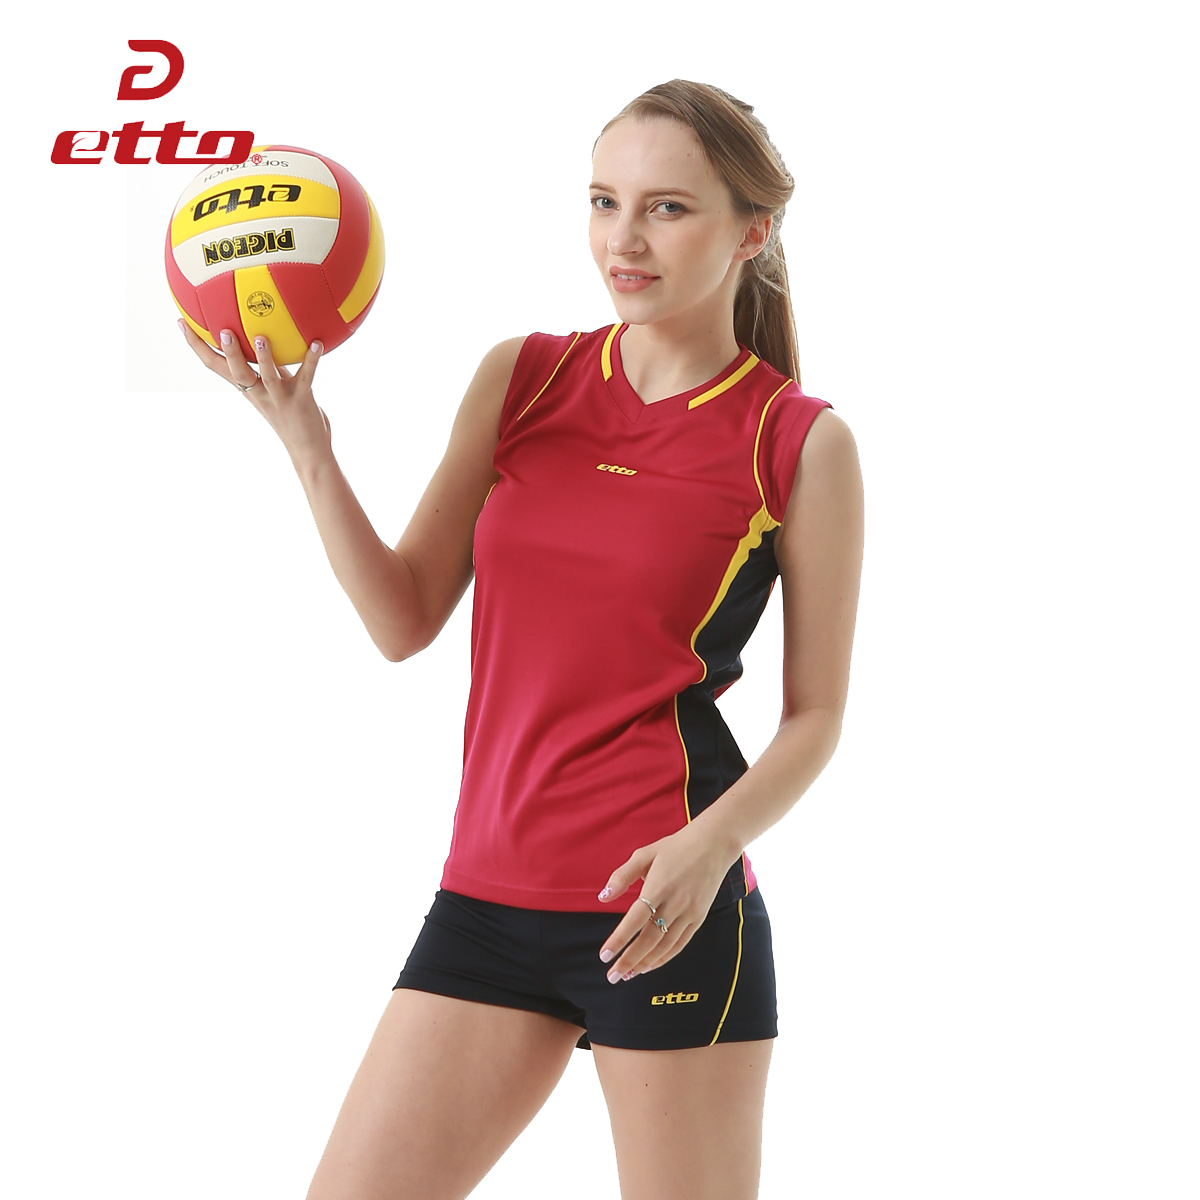 Etto 2018 Neue Professionelle Frauen Volleyball Trikots Uniformen Sportwear Anzug Weibliche Volleyball Sleeveless Training Kits HXB008